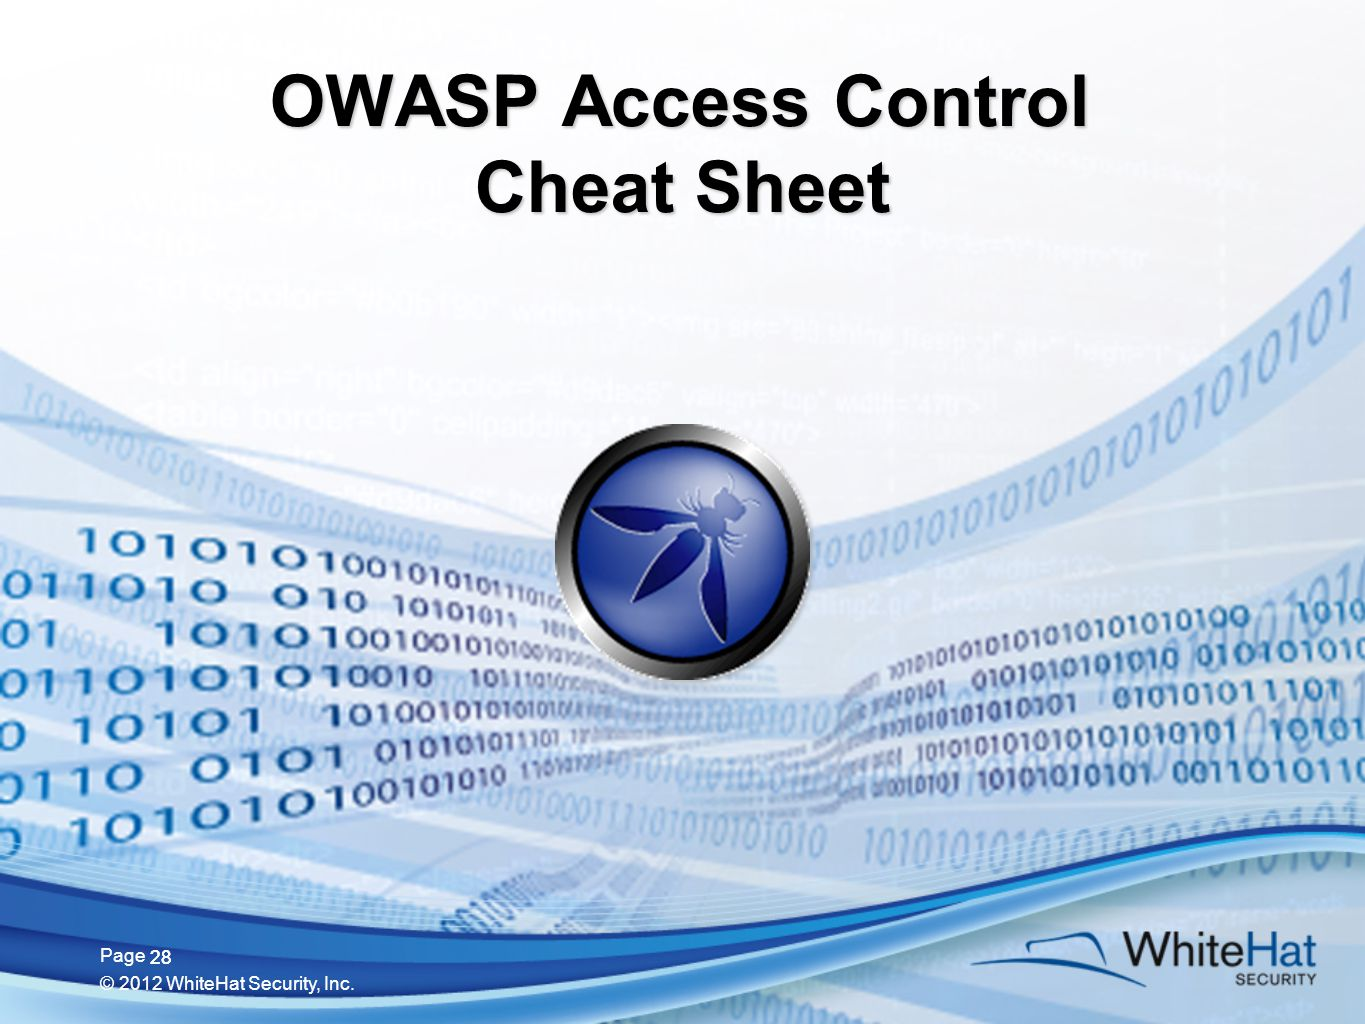 28 Page © 2012 WhiteHat Security, Inc. 28 OWASP Access Control Cheat Sheet